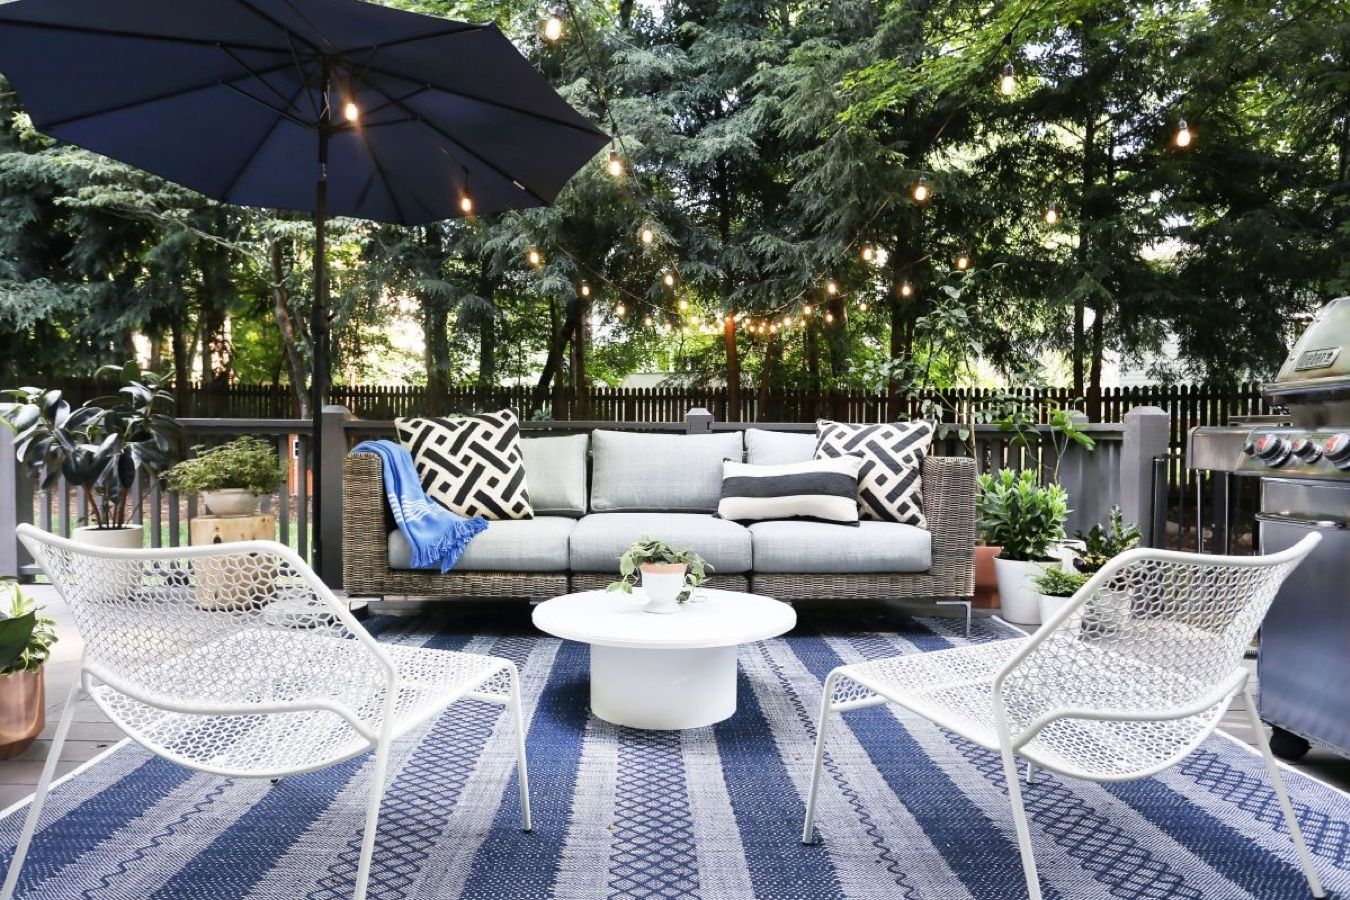 How To Clean Outdoor Cushions: A Step-By-Step Guide, Plus Expert Tips